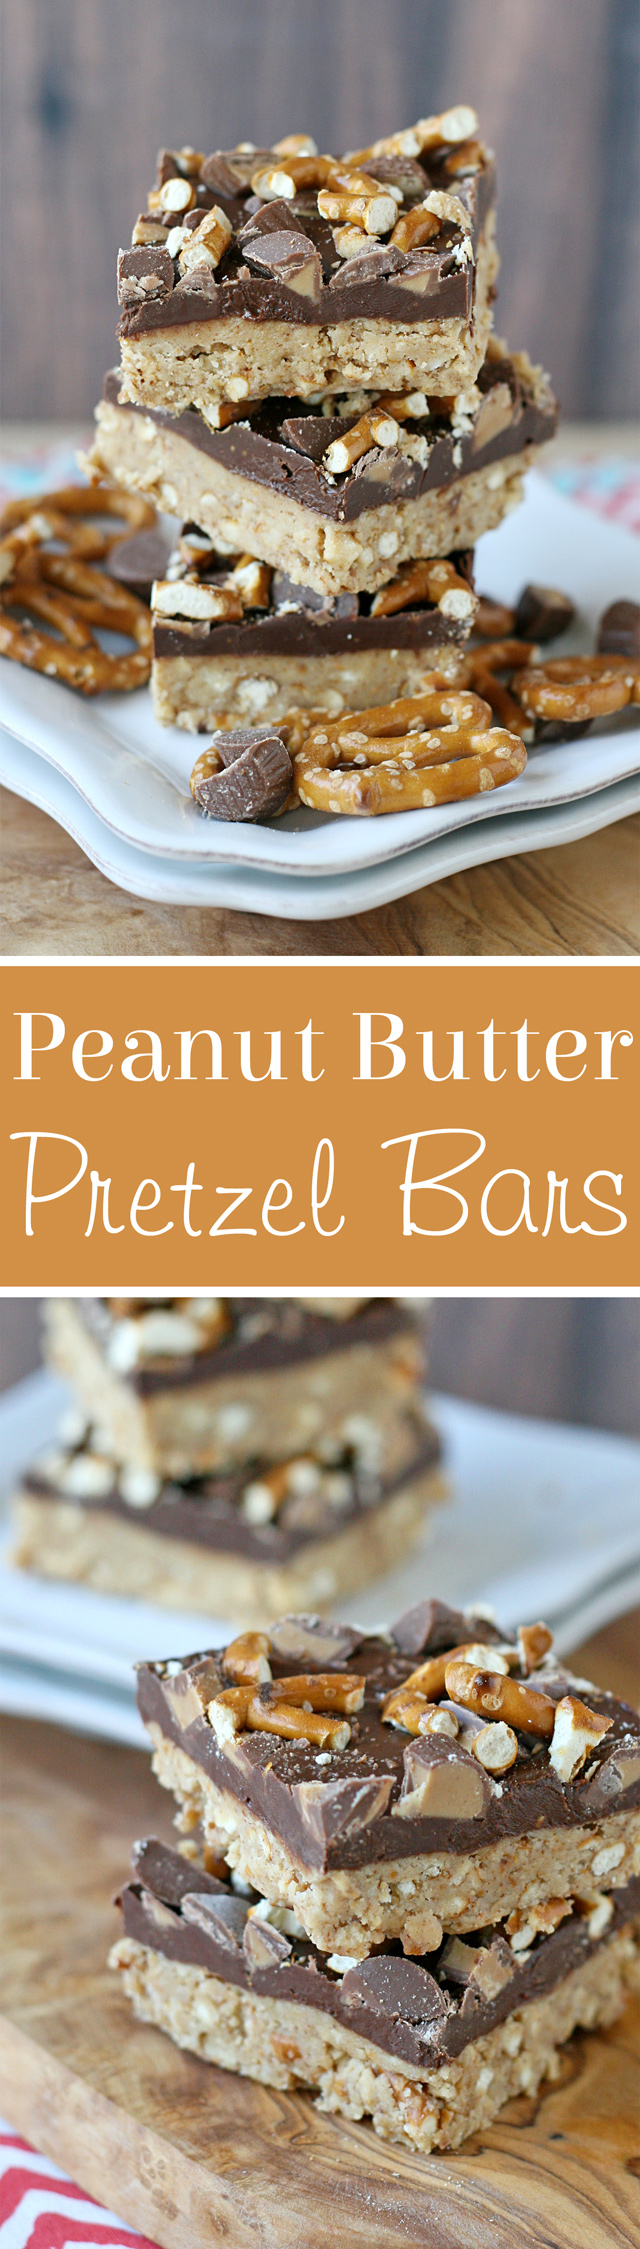 Easy & delicious NO-BAKE PEANUT BUTTER PRETZEL BARS!